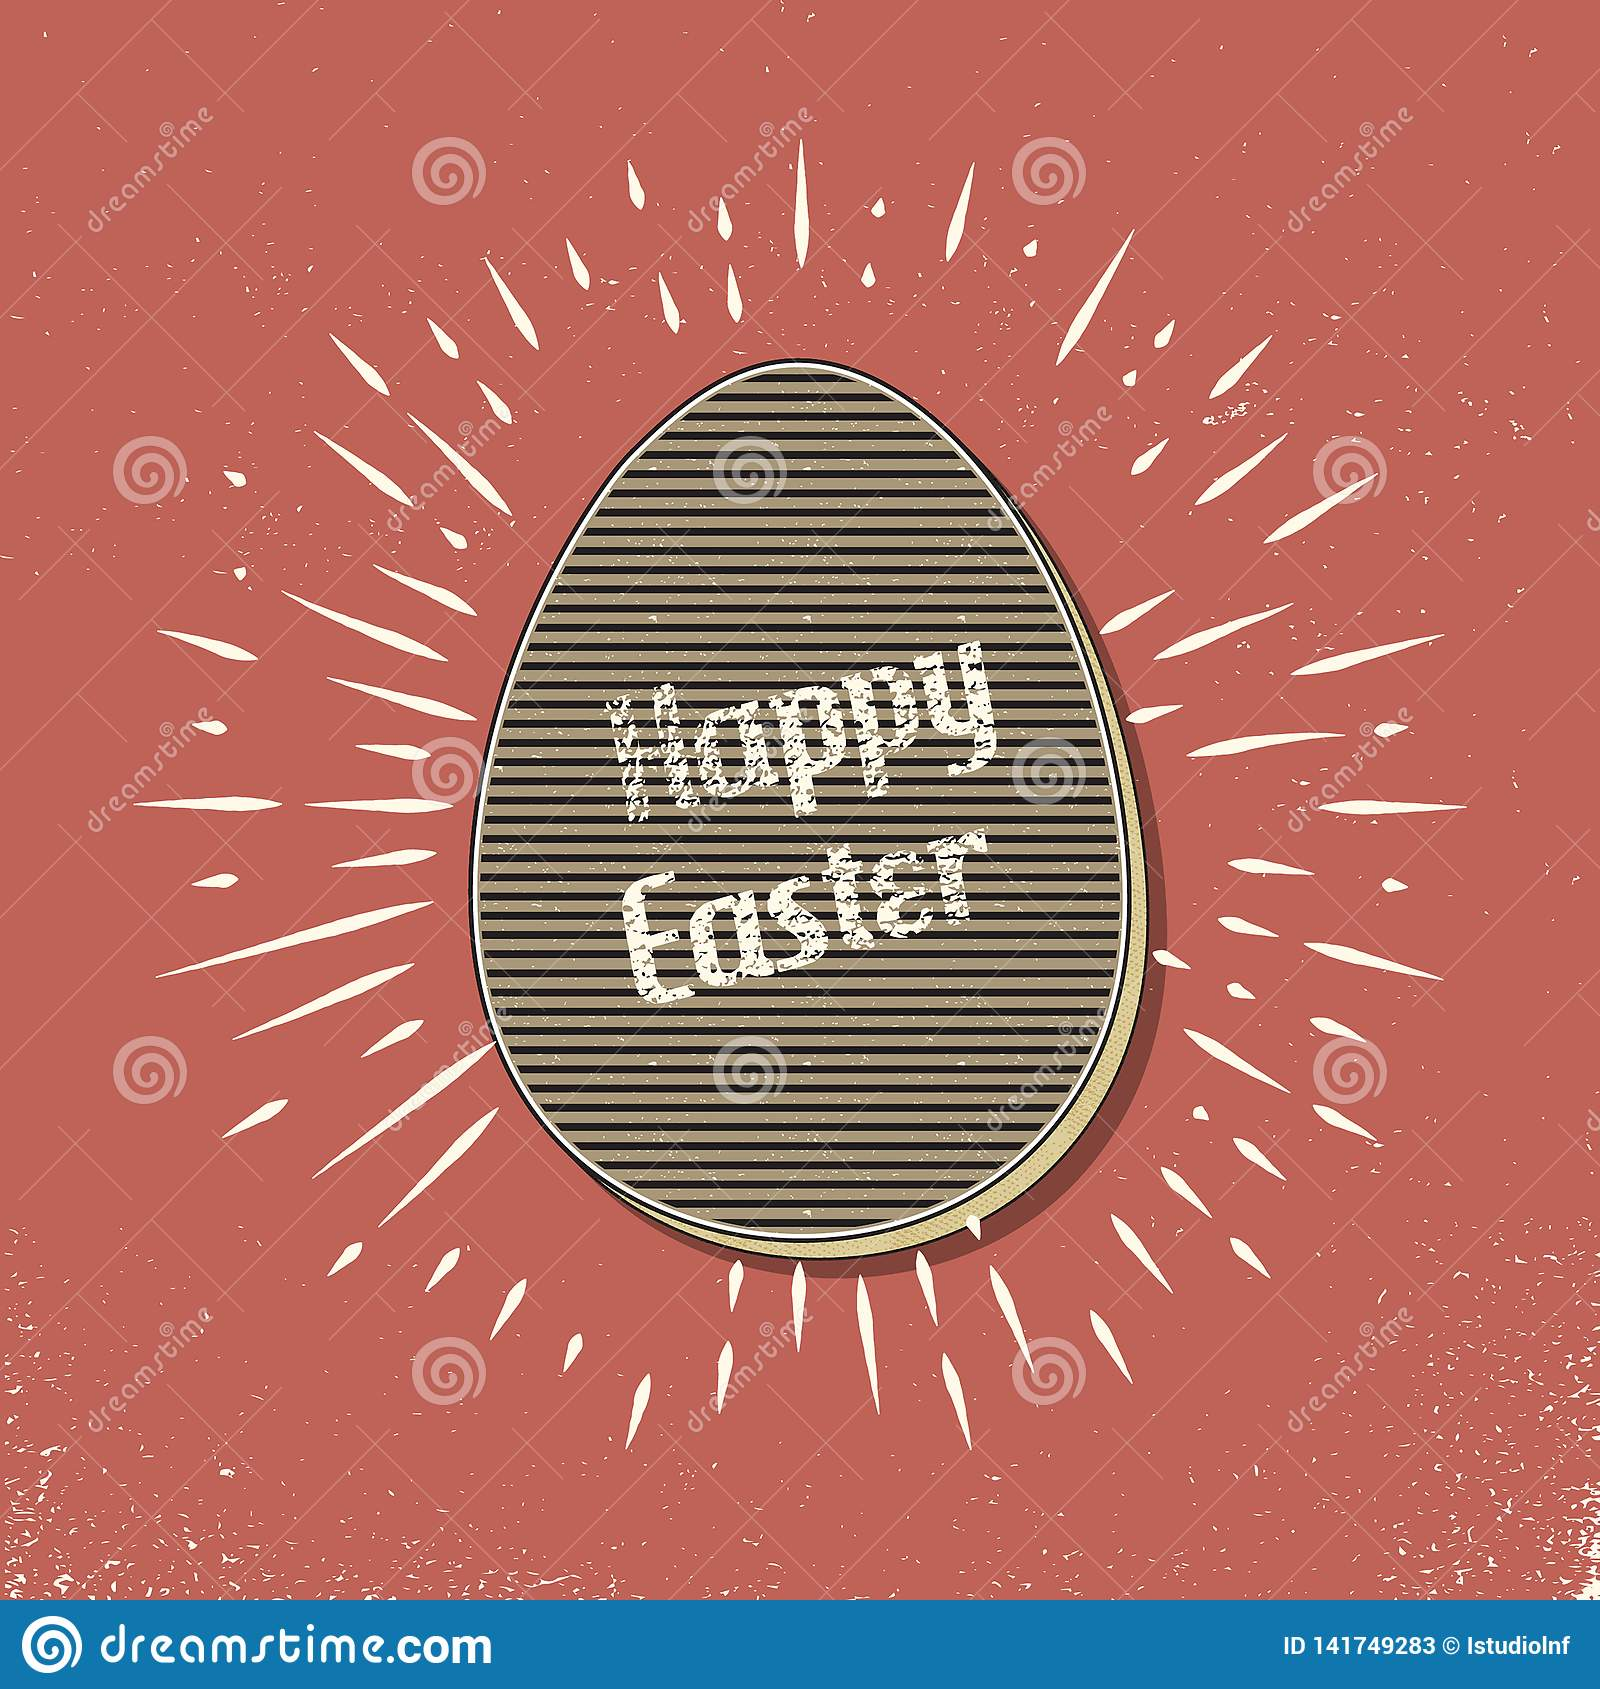 Retro easter egg card illustration for holiday background